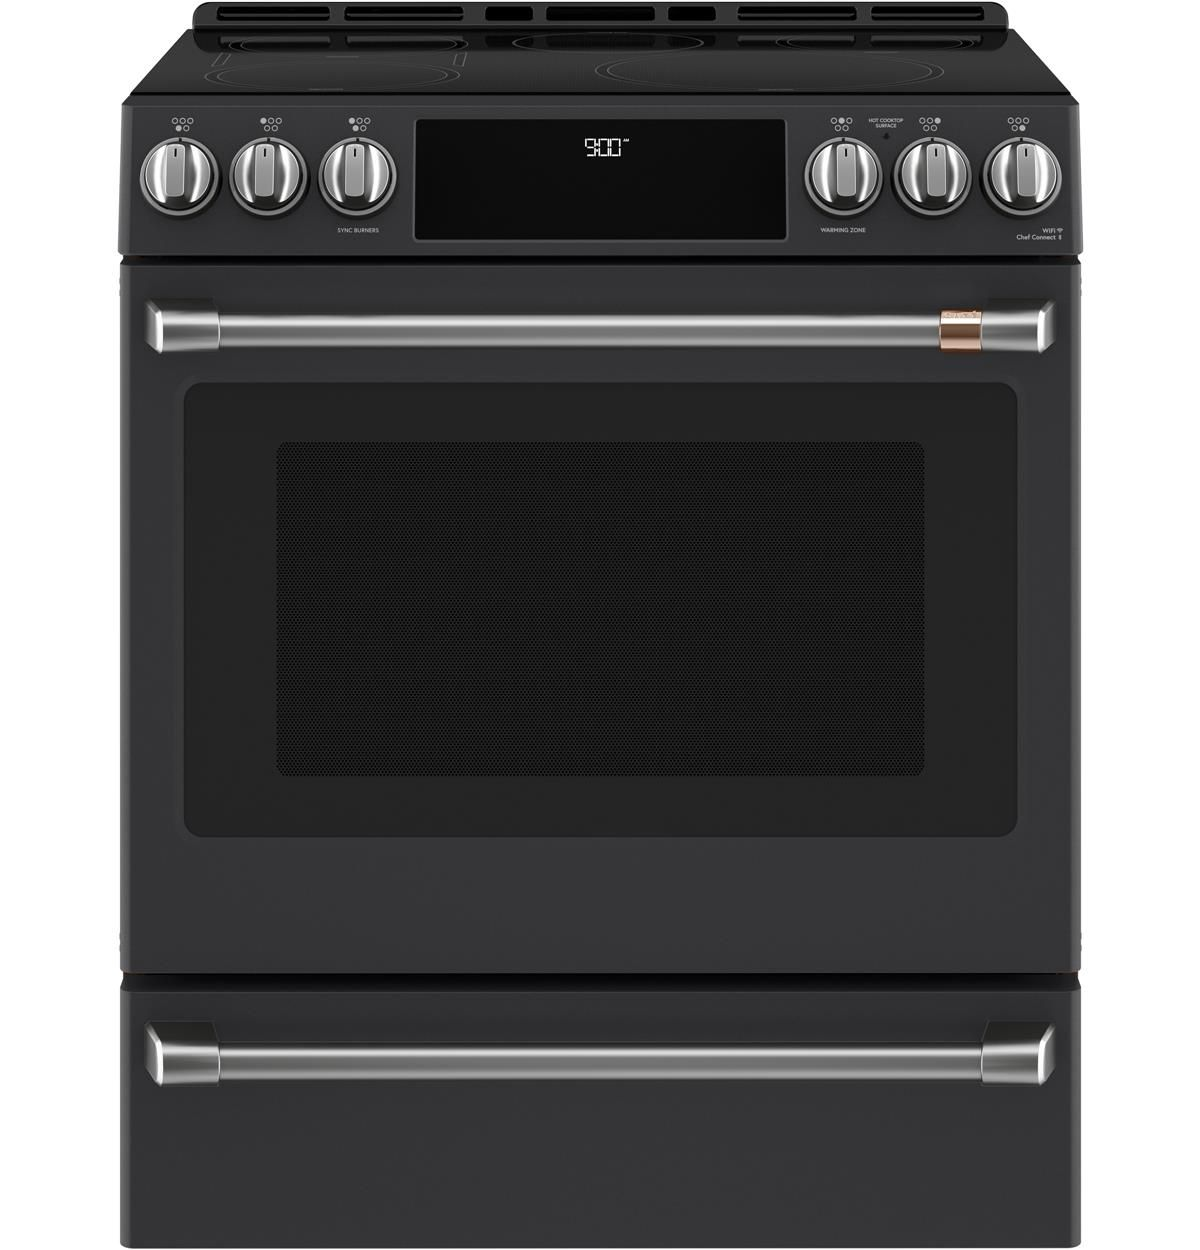 Cafe 30 Slide In Front Control Induction And Convection Range With Warming Drawer This Gas Range Double Oven Convection Range Gas Double Oven